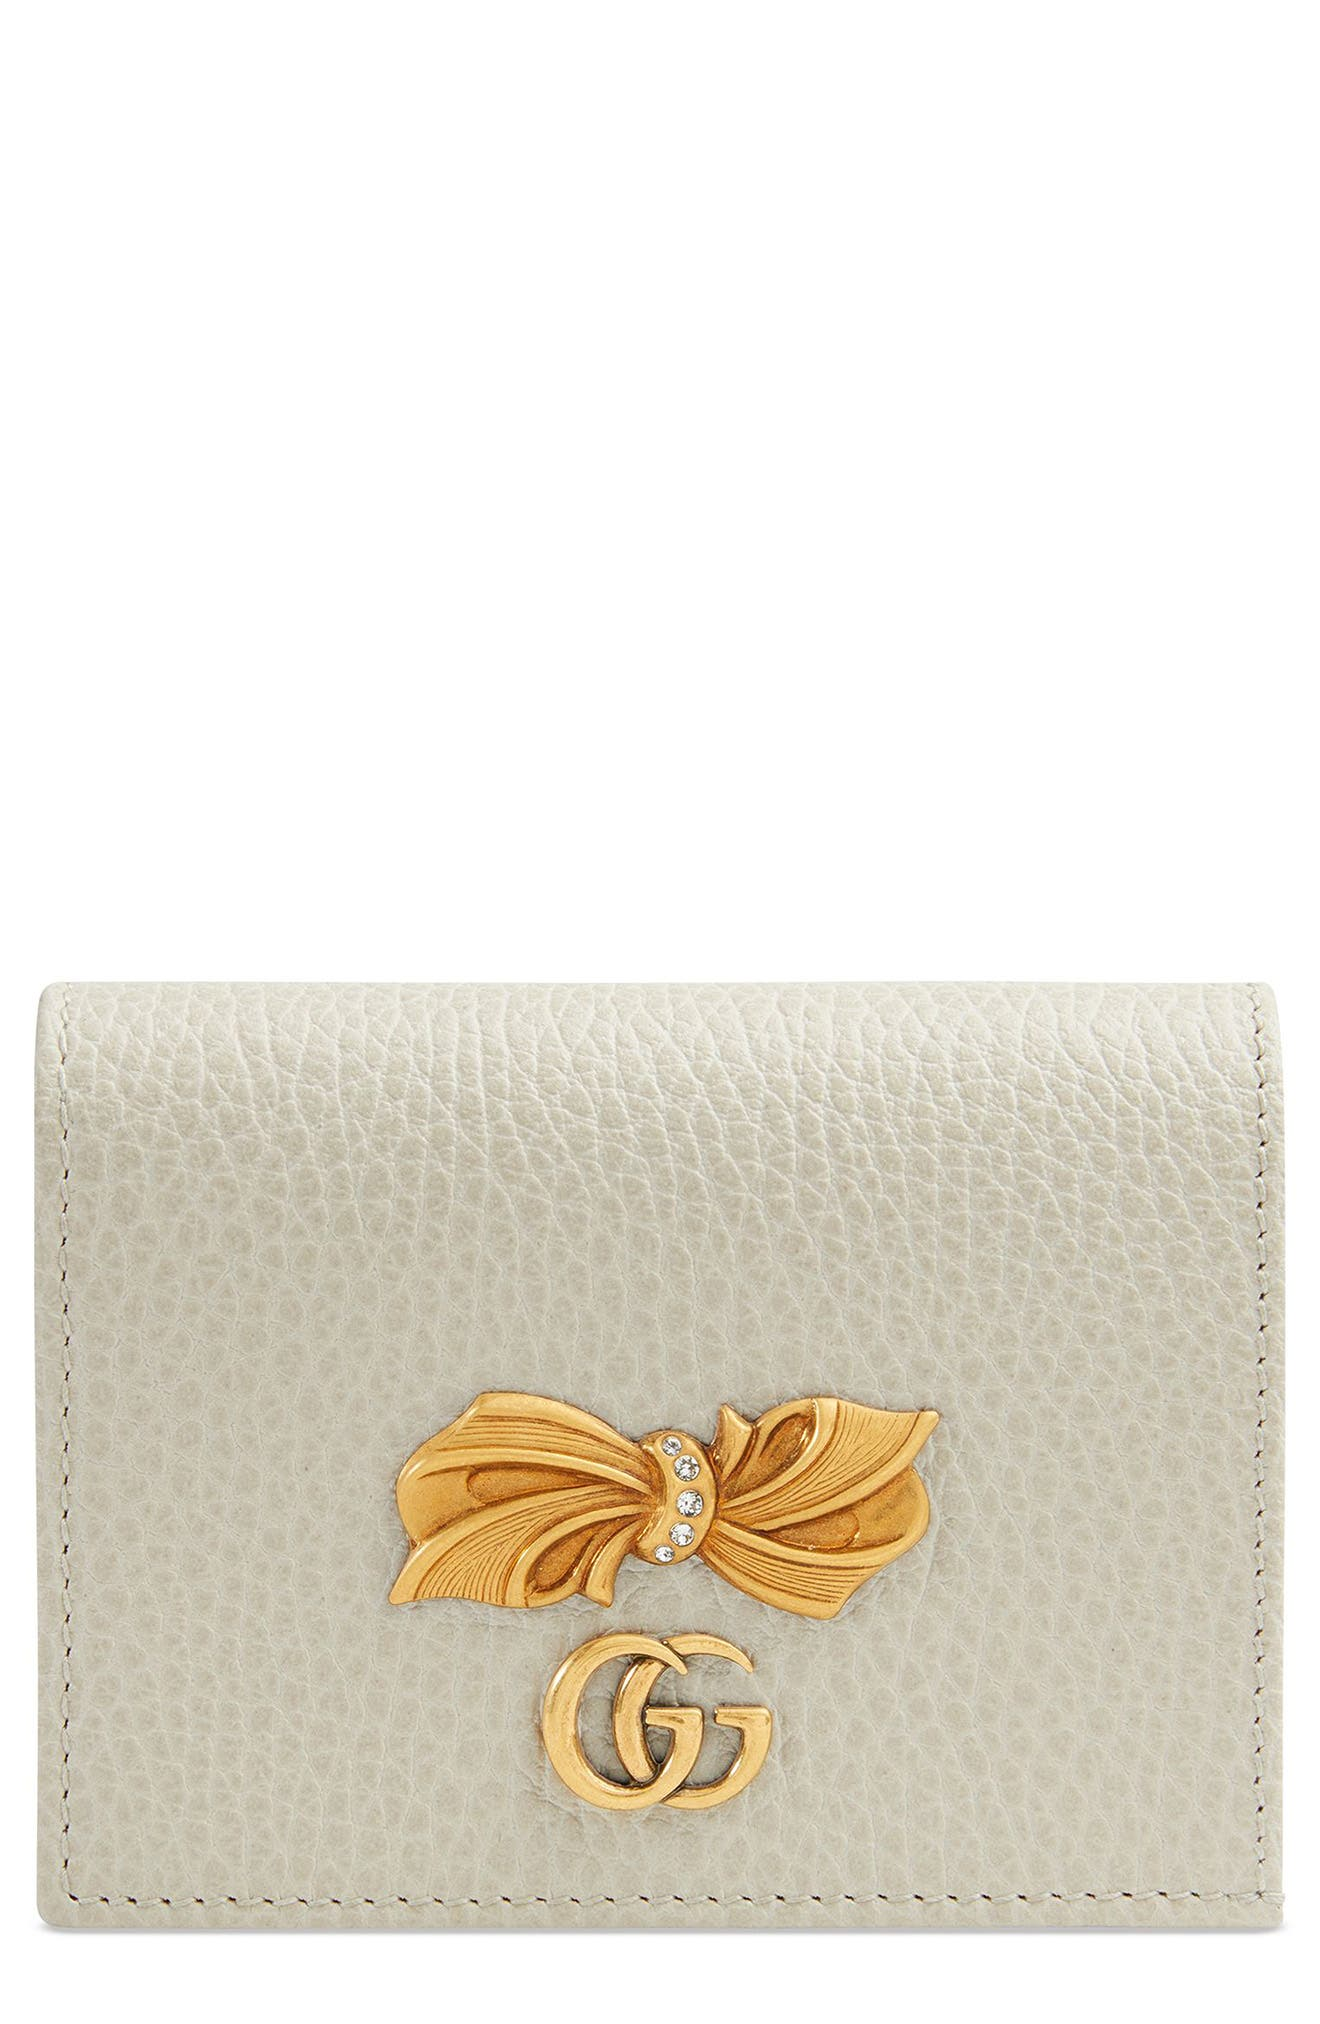 Fiocchino Leather Card Case,                         Main,                         color, Mystic White/ Pink/ Crystal